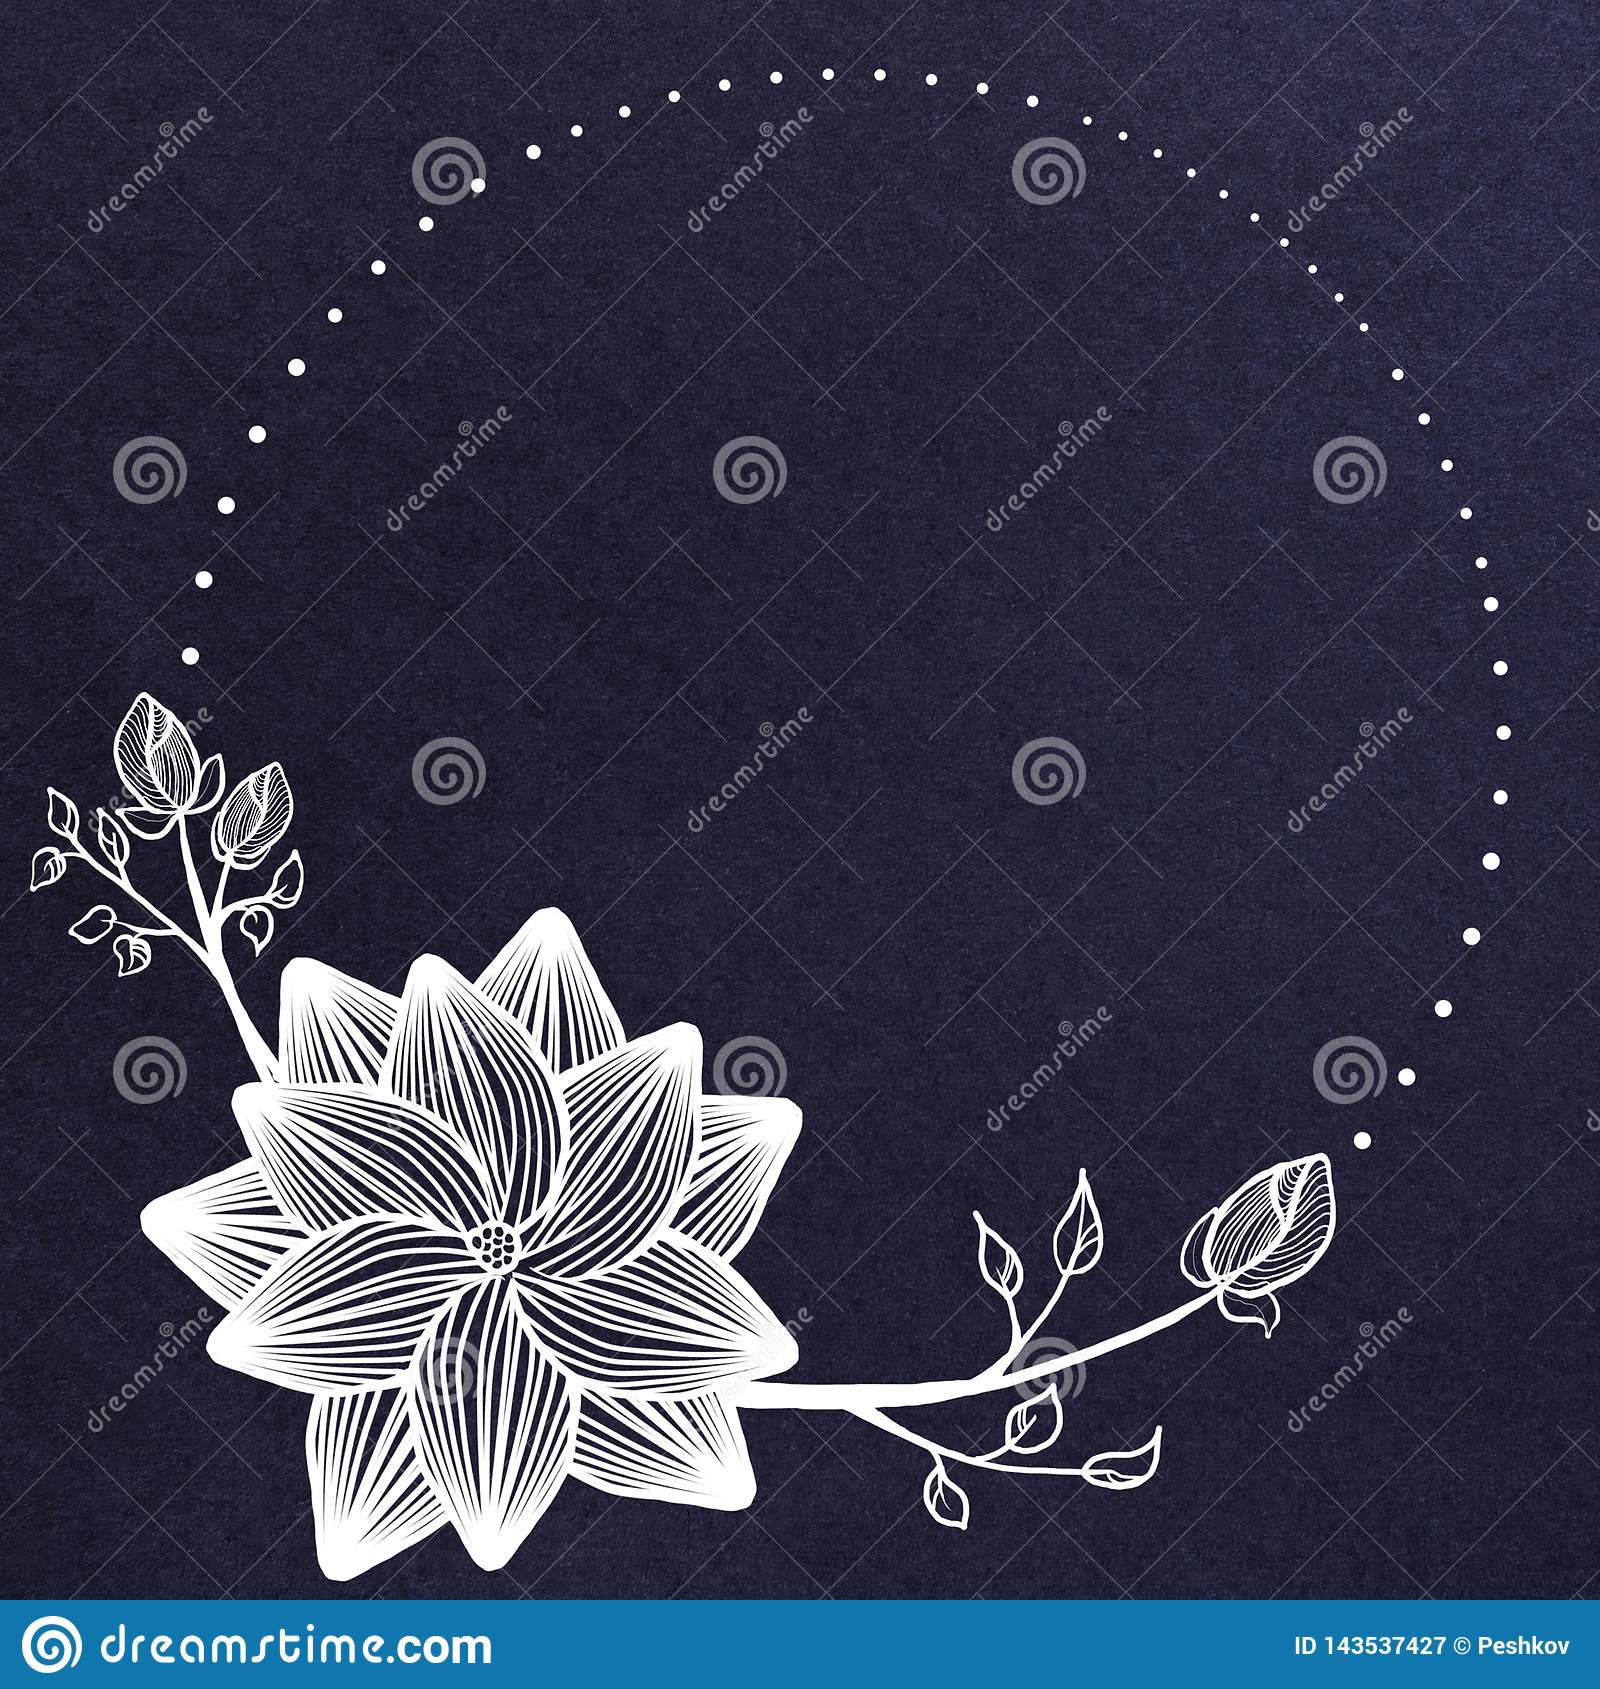 Creative blue floral banner